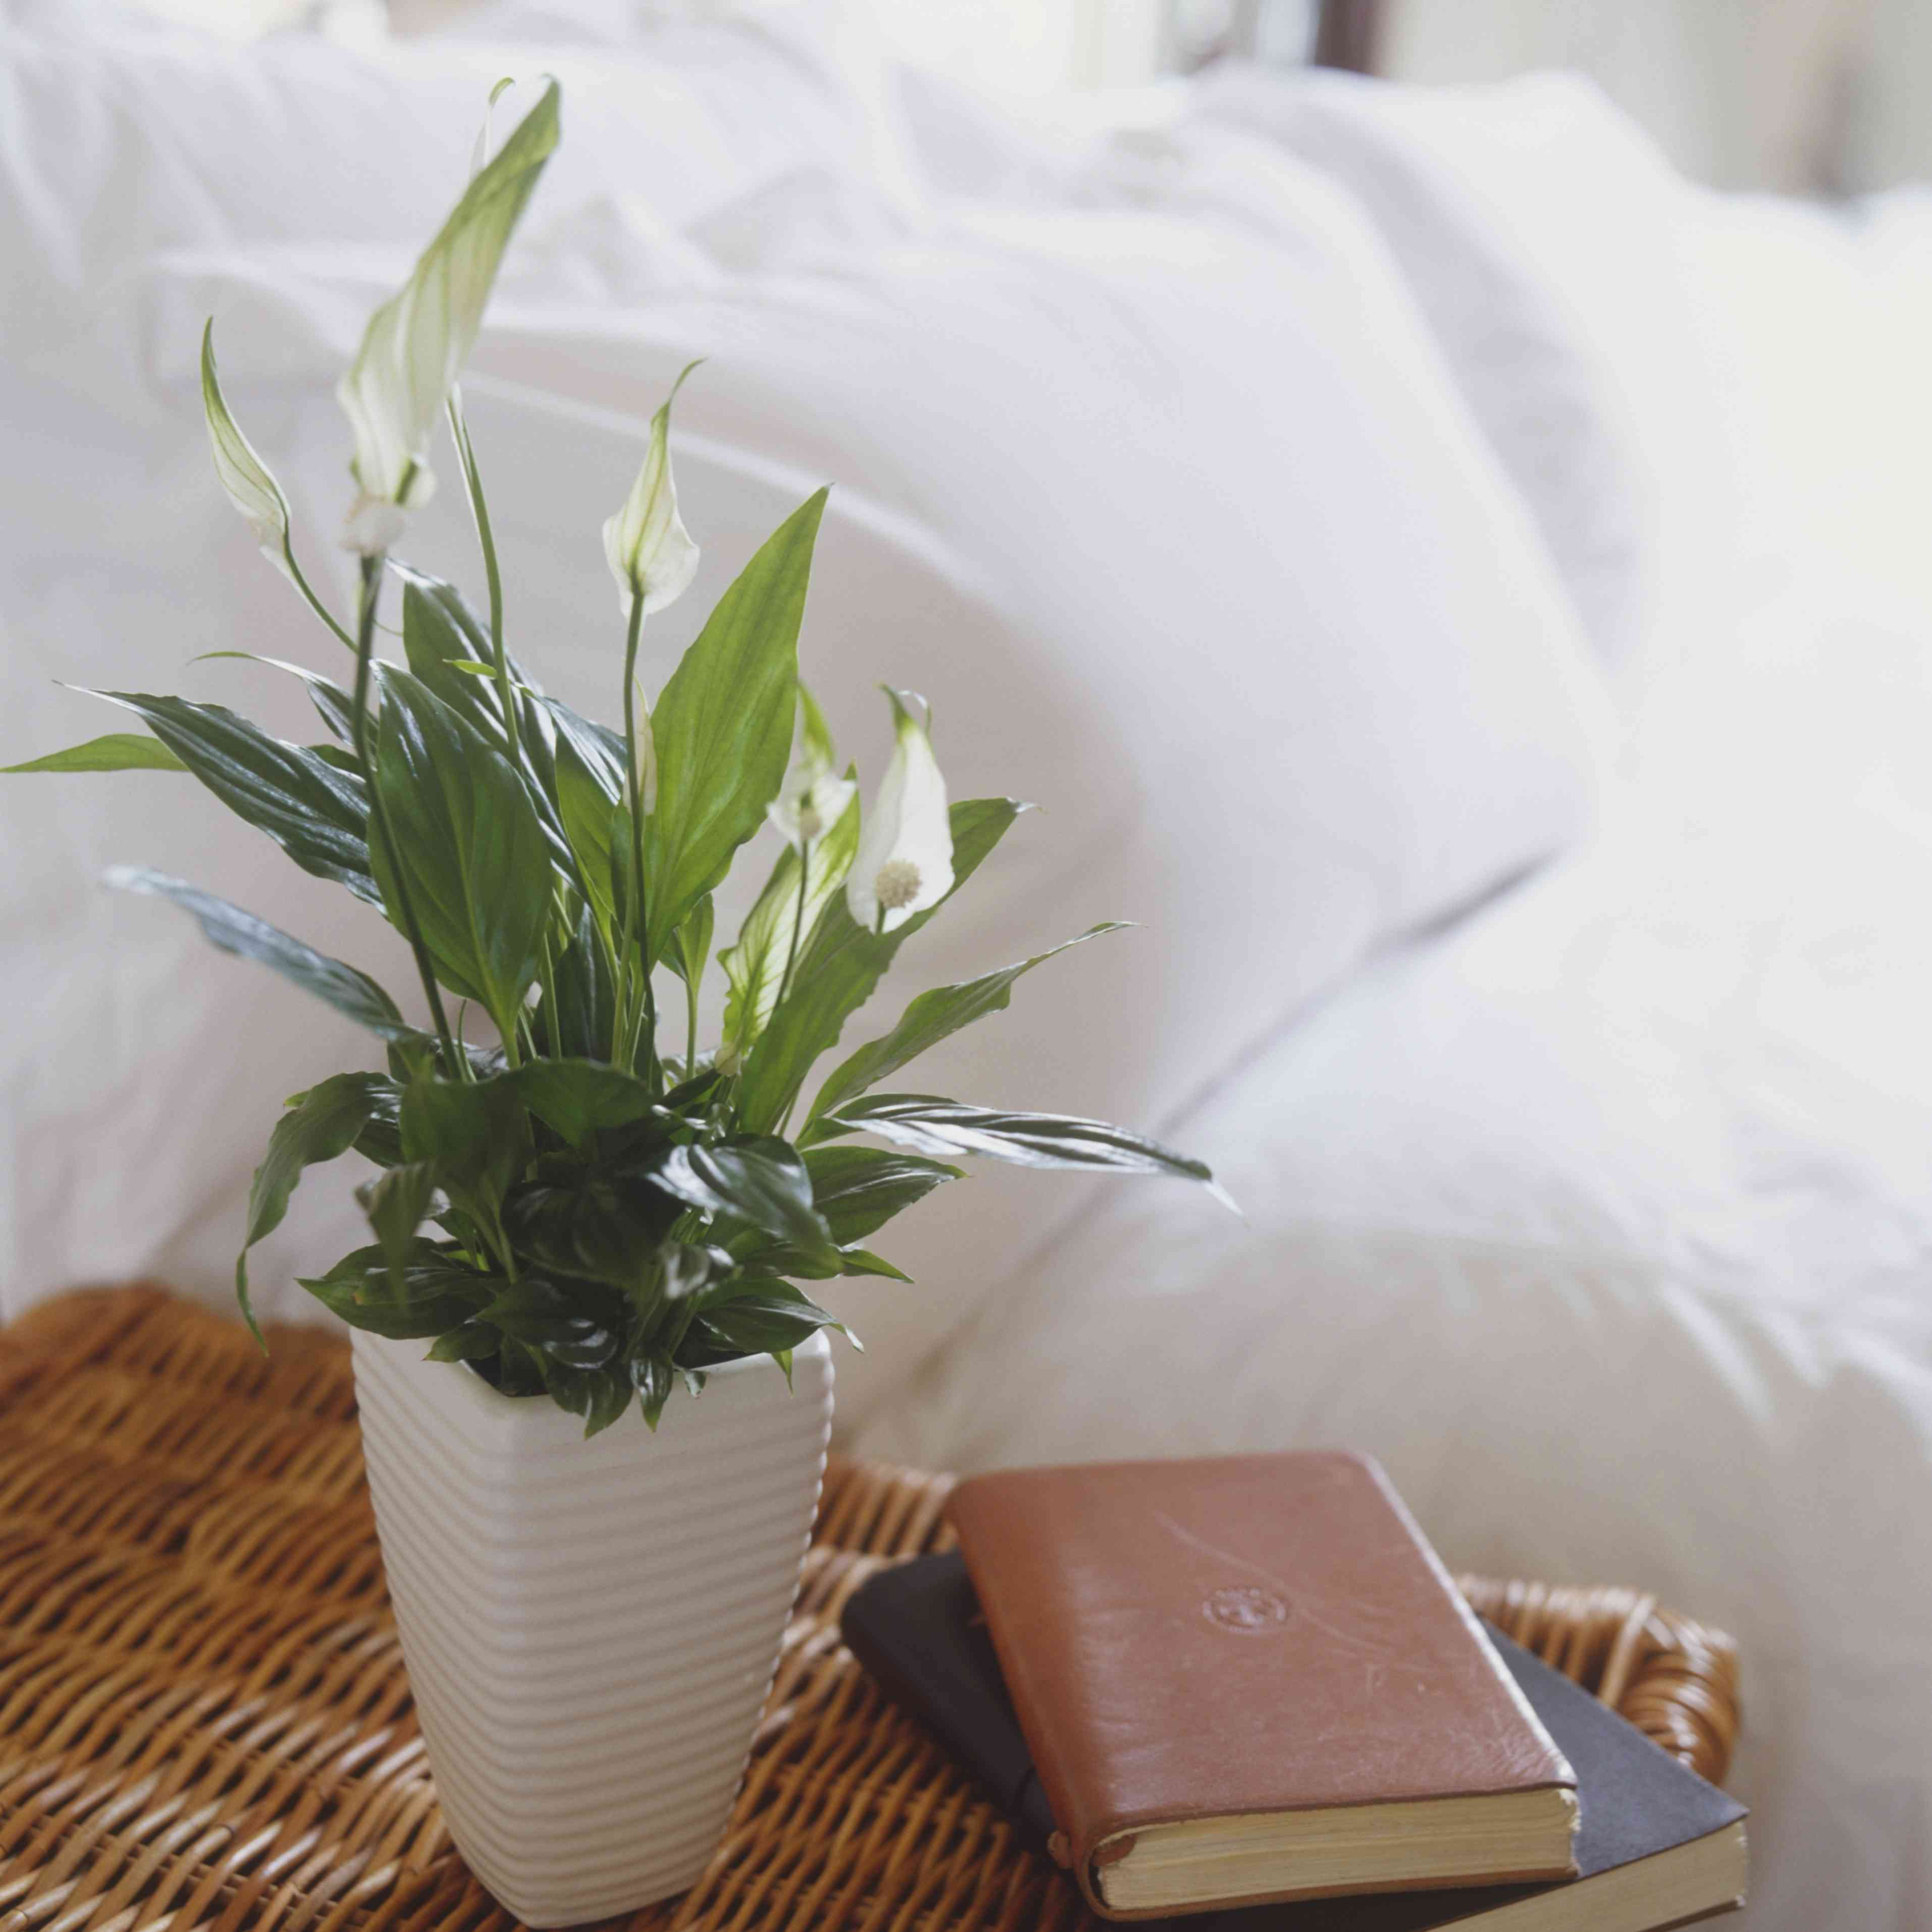 Potted peace lily on a bedroom side table